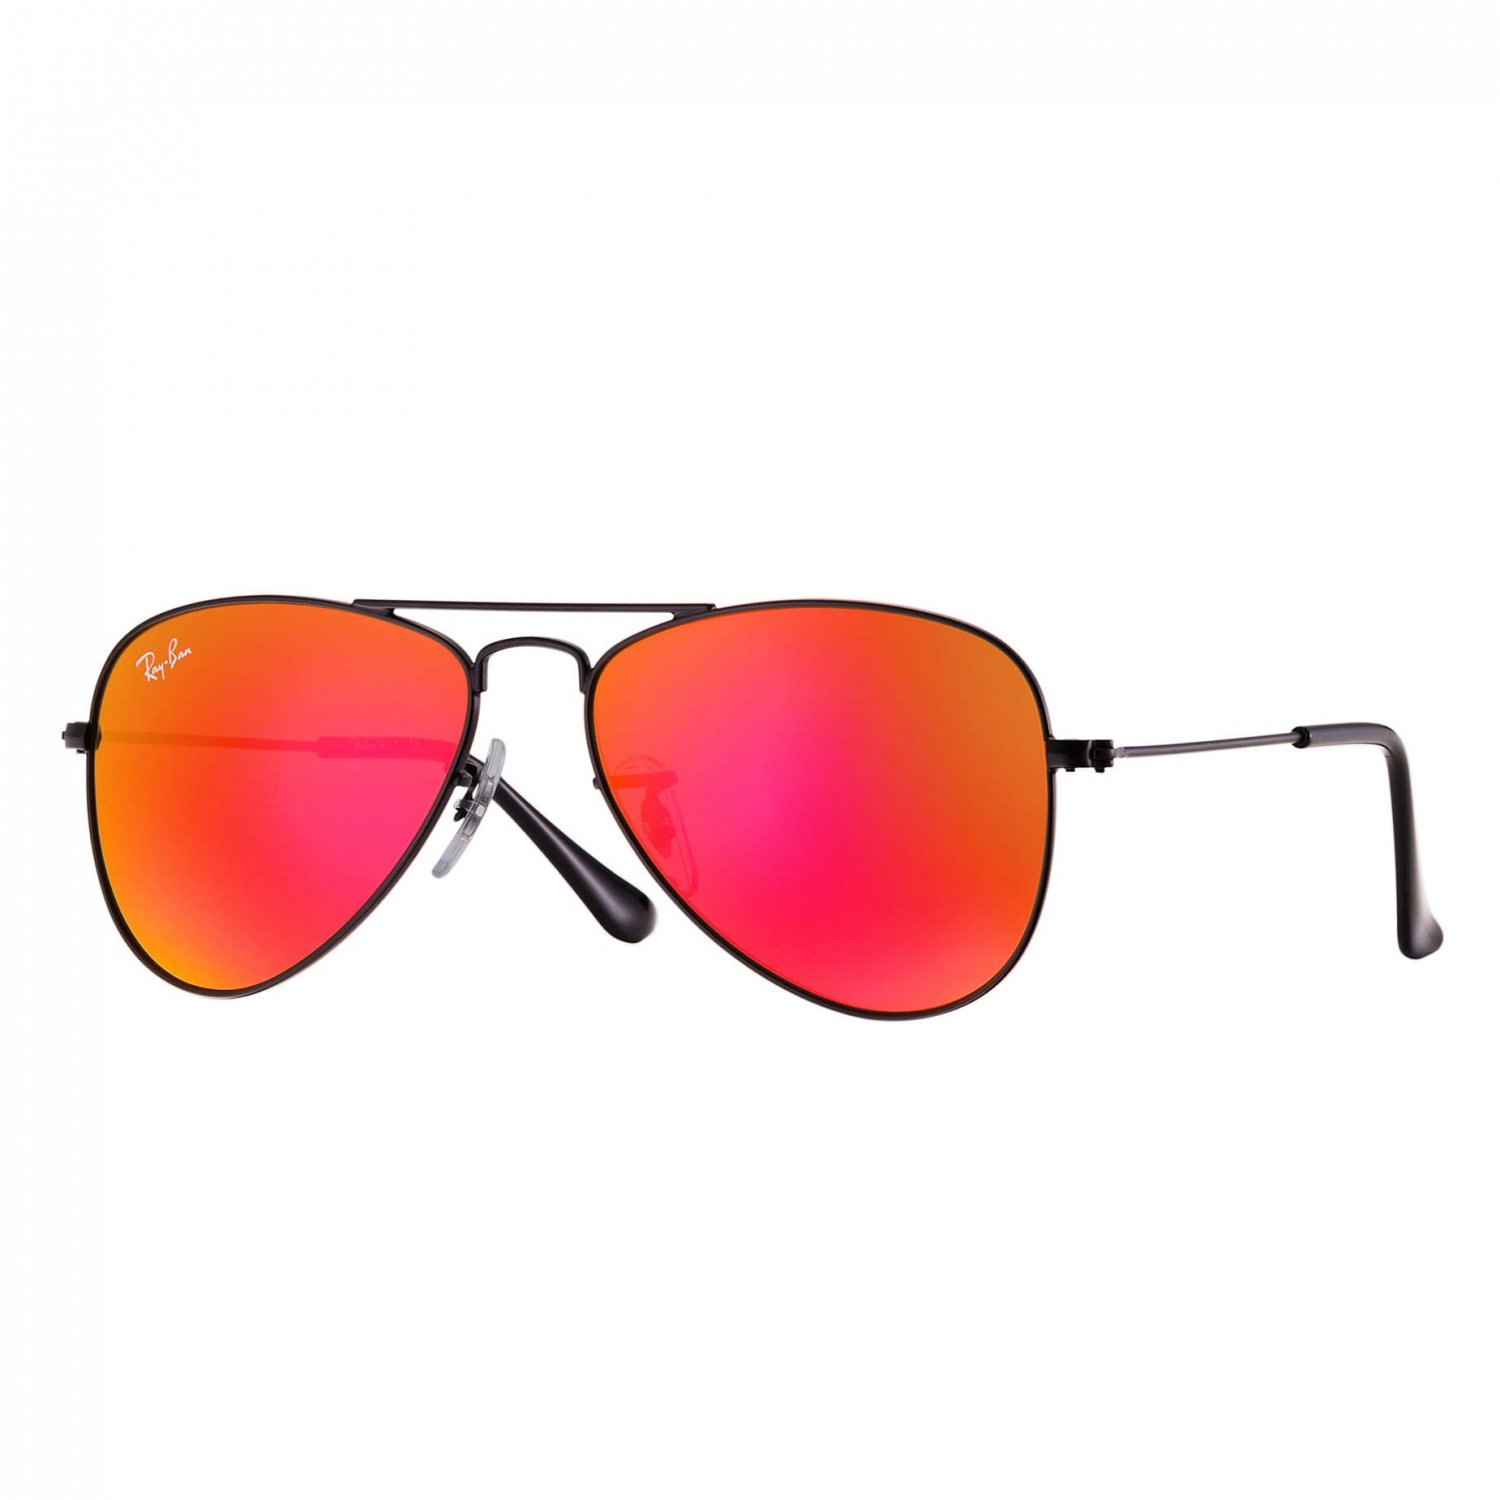 Ray-Ban Jr Aviator Sunglasses - Matte Black/Mirror Red